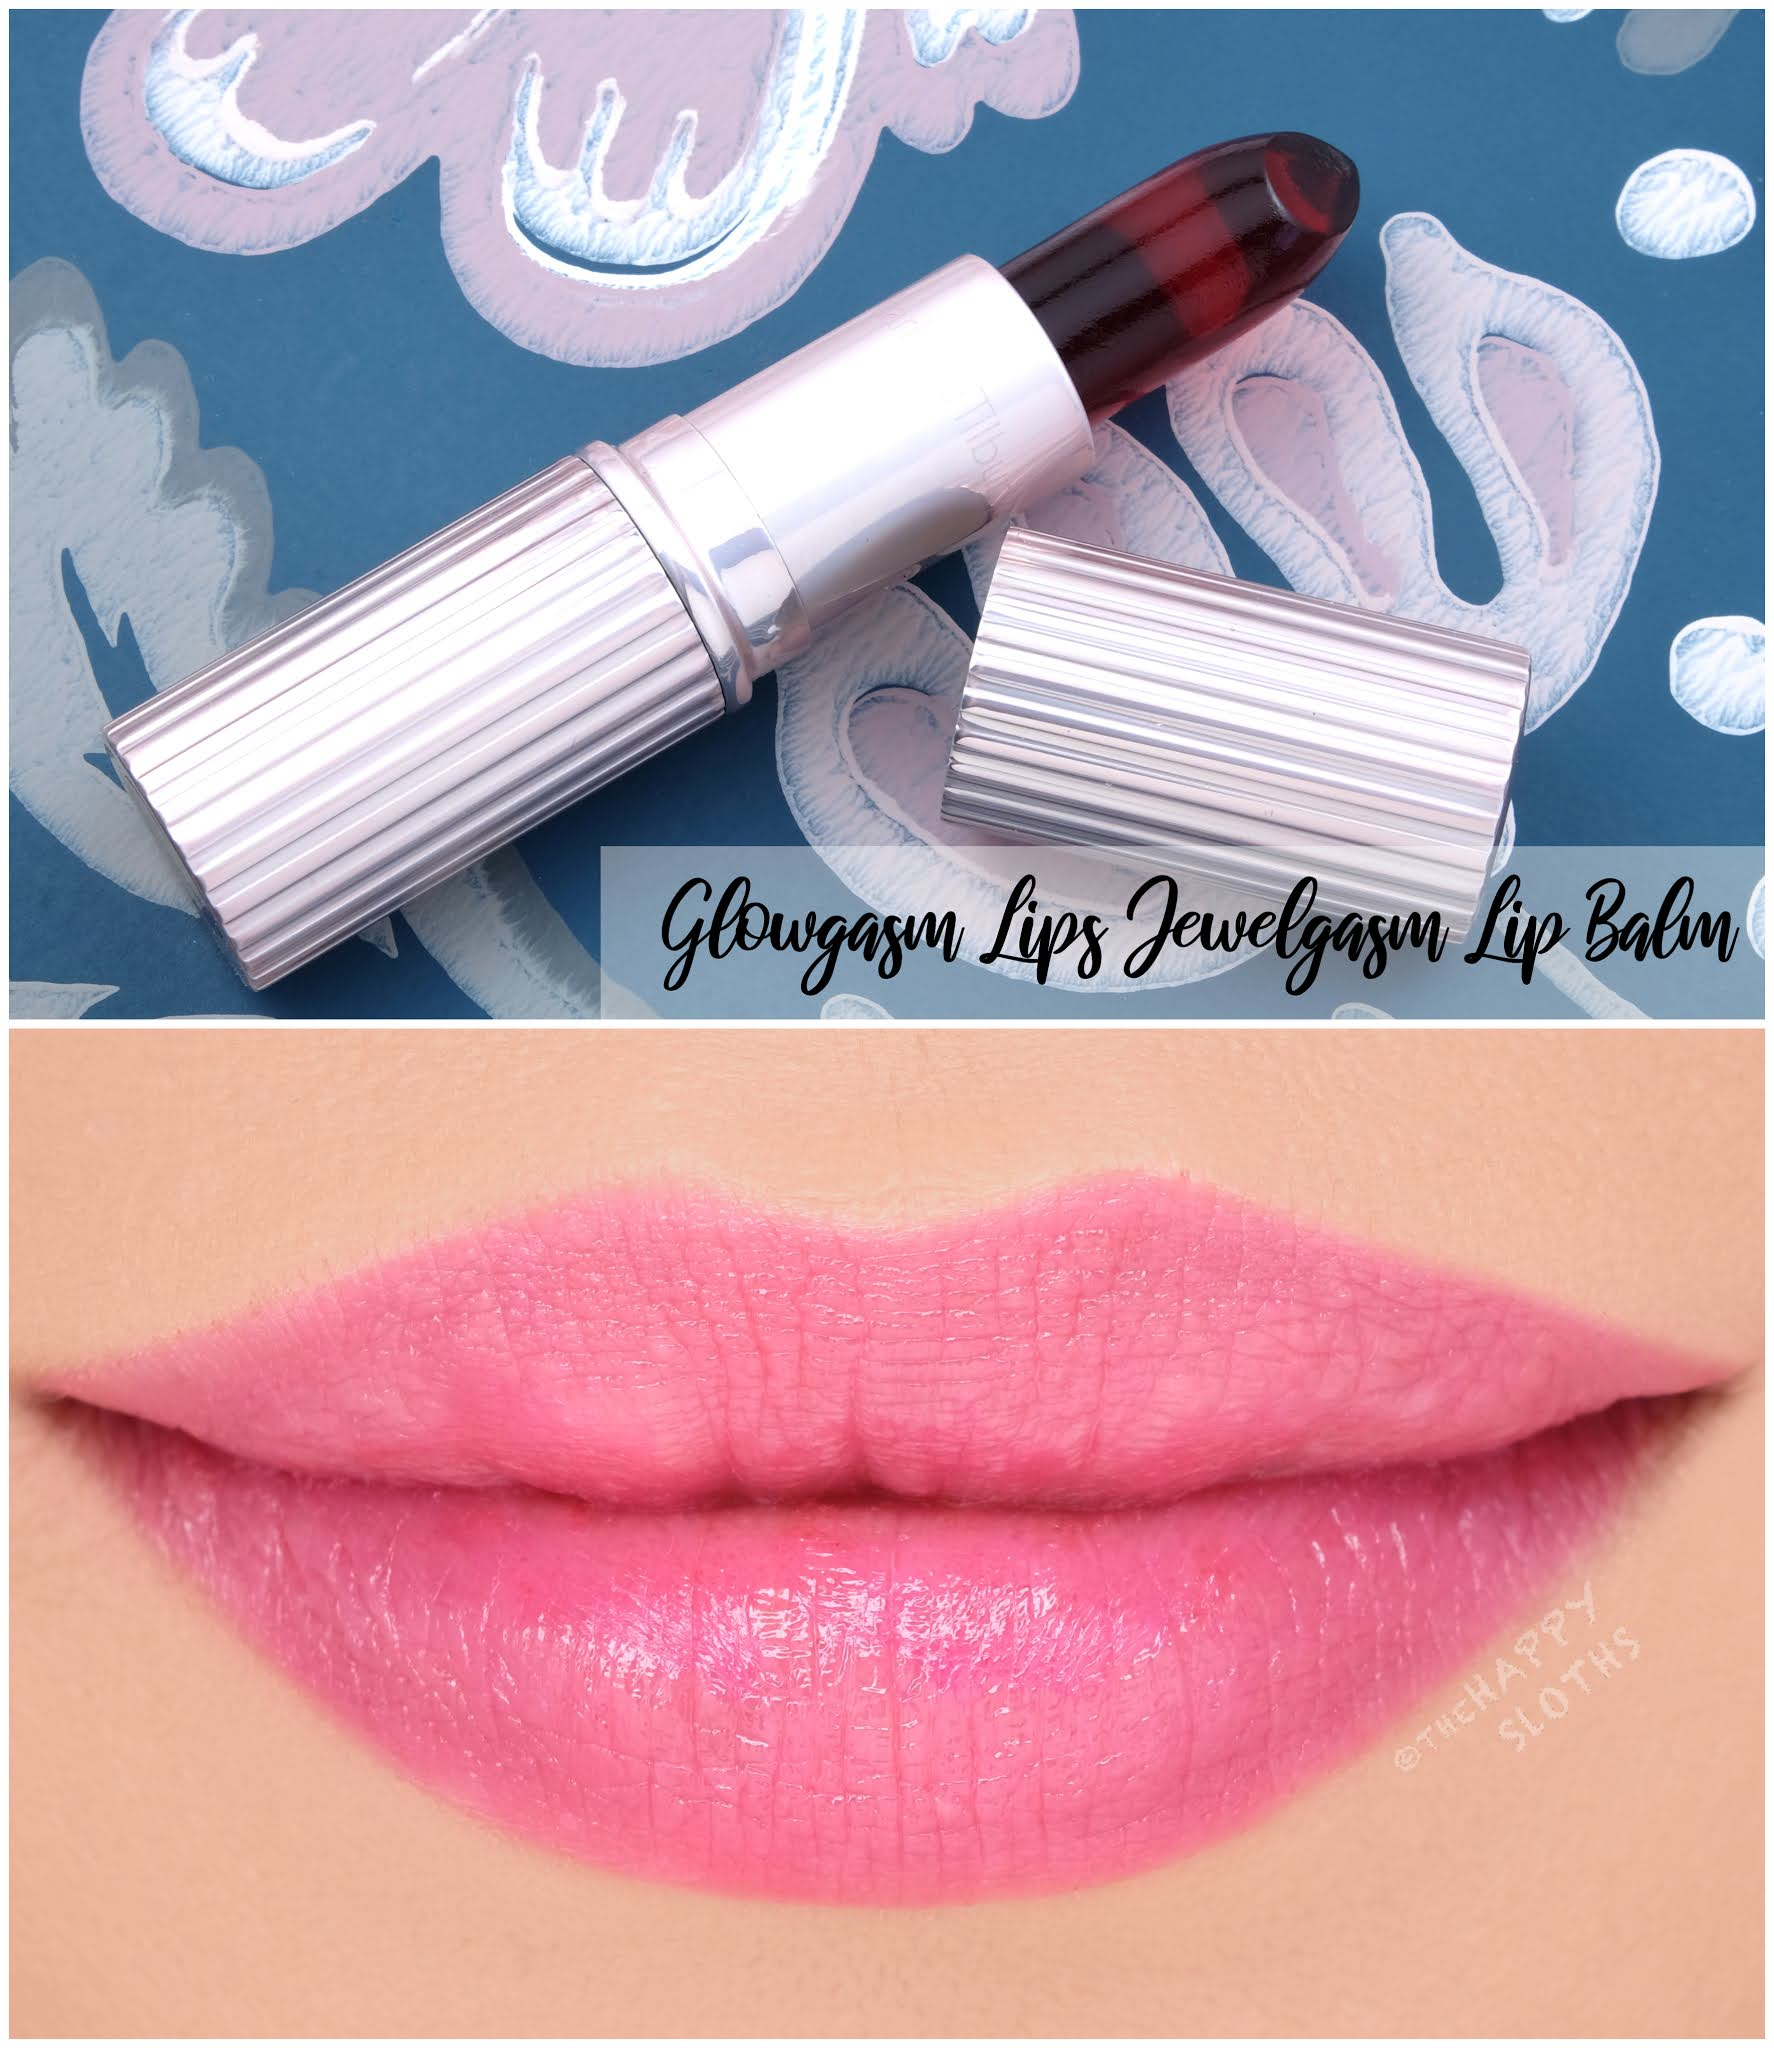 Charlotte Tilbury | Glowgasm Lips Jewelgasm Lip Balm: Review and Swatches